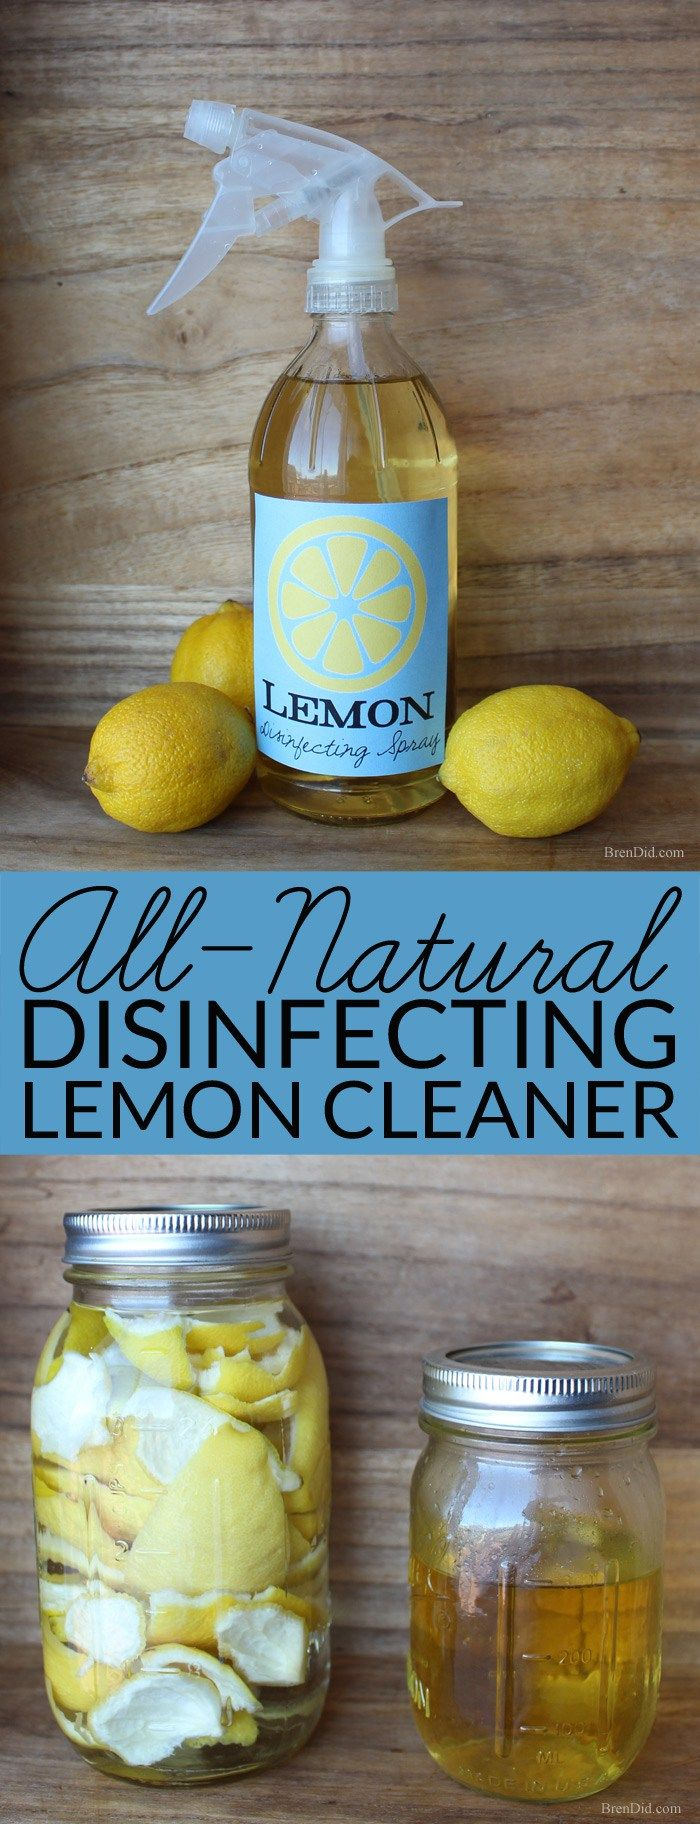 My all-natural disinfecting spray can  help protect your family from germs during cold and flu season. It can also be used to clean cutting boards and kitchen counters while cooking. Learn how to make your own disinfecting cleaner for an easy, frugal cleaning solution that is also beneficial to your health.